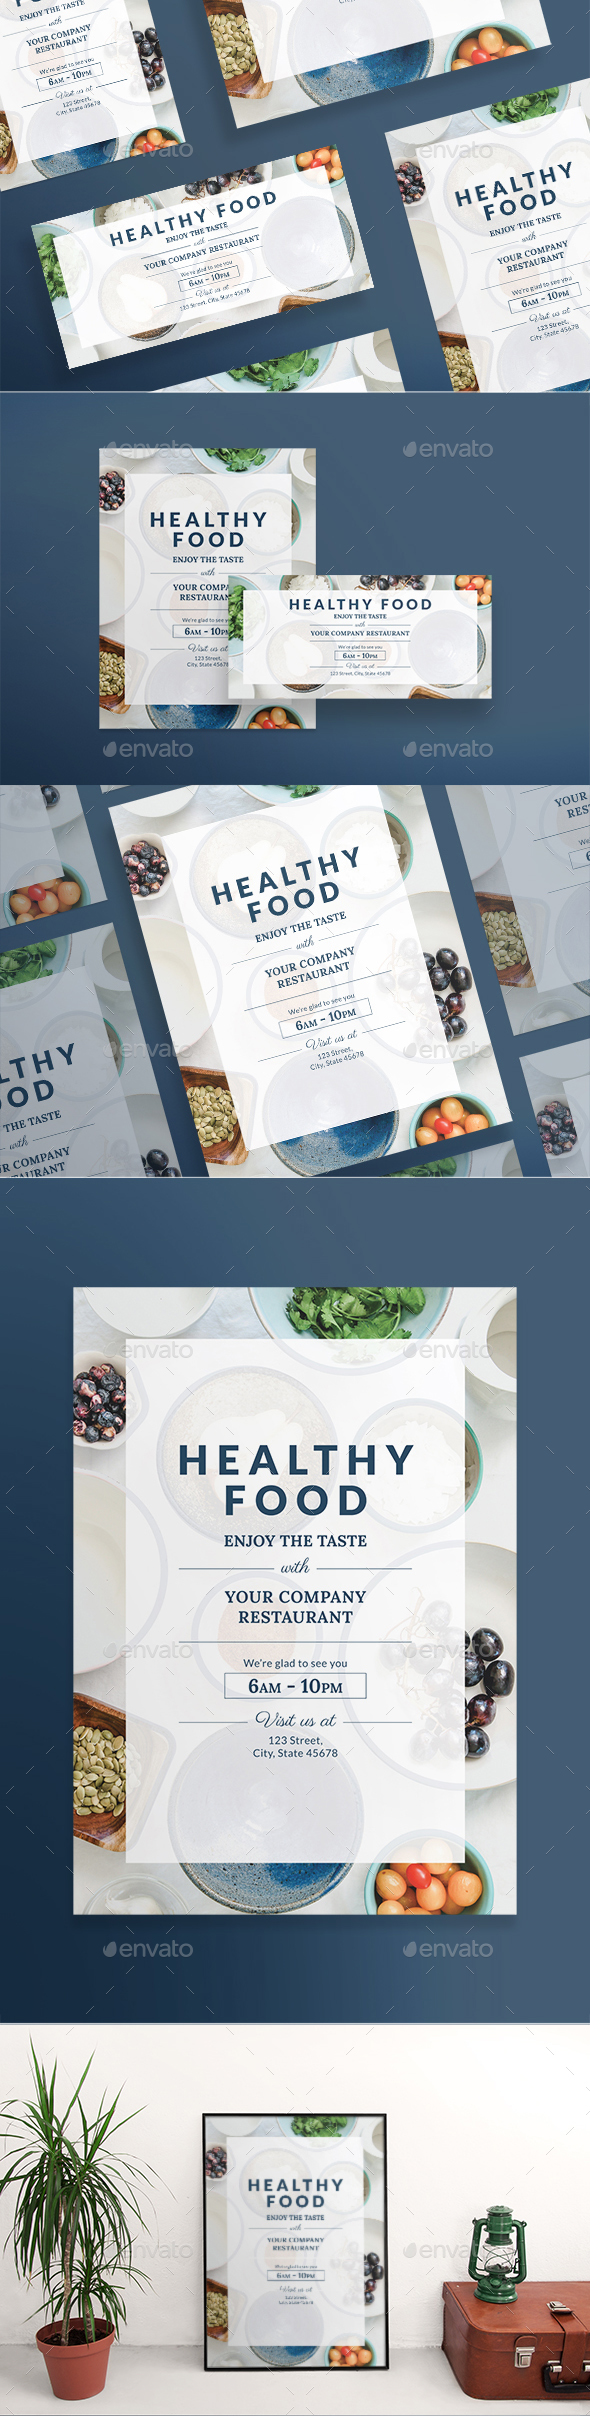 Healthy Food Flyers - Restaurant Flyers